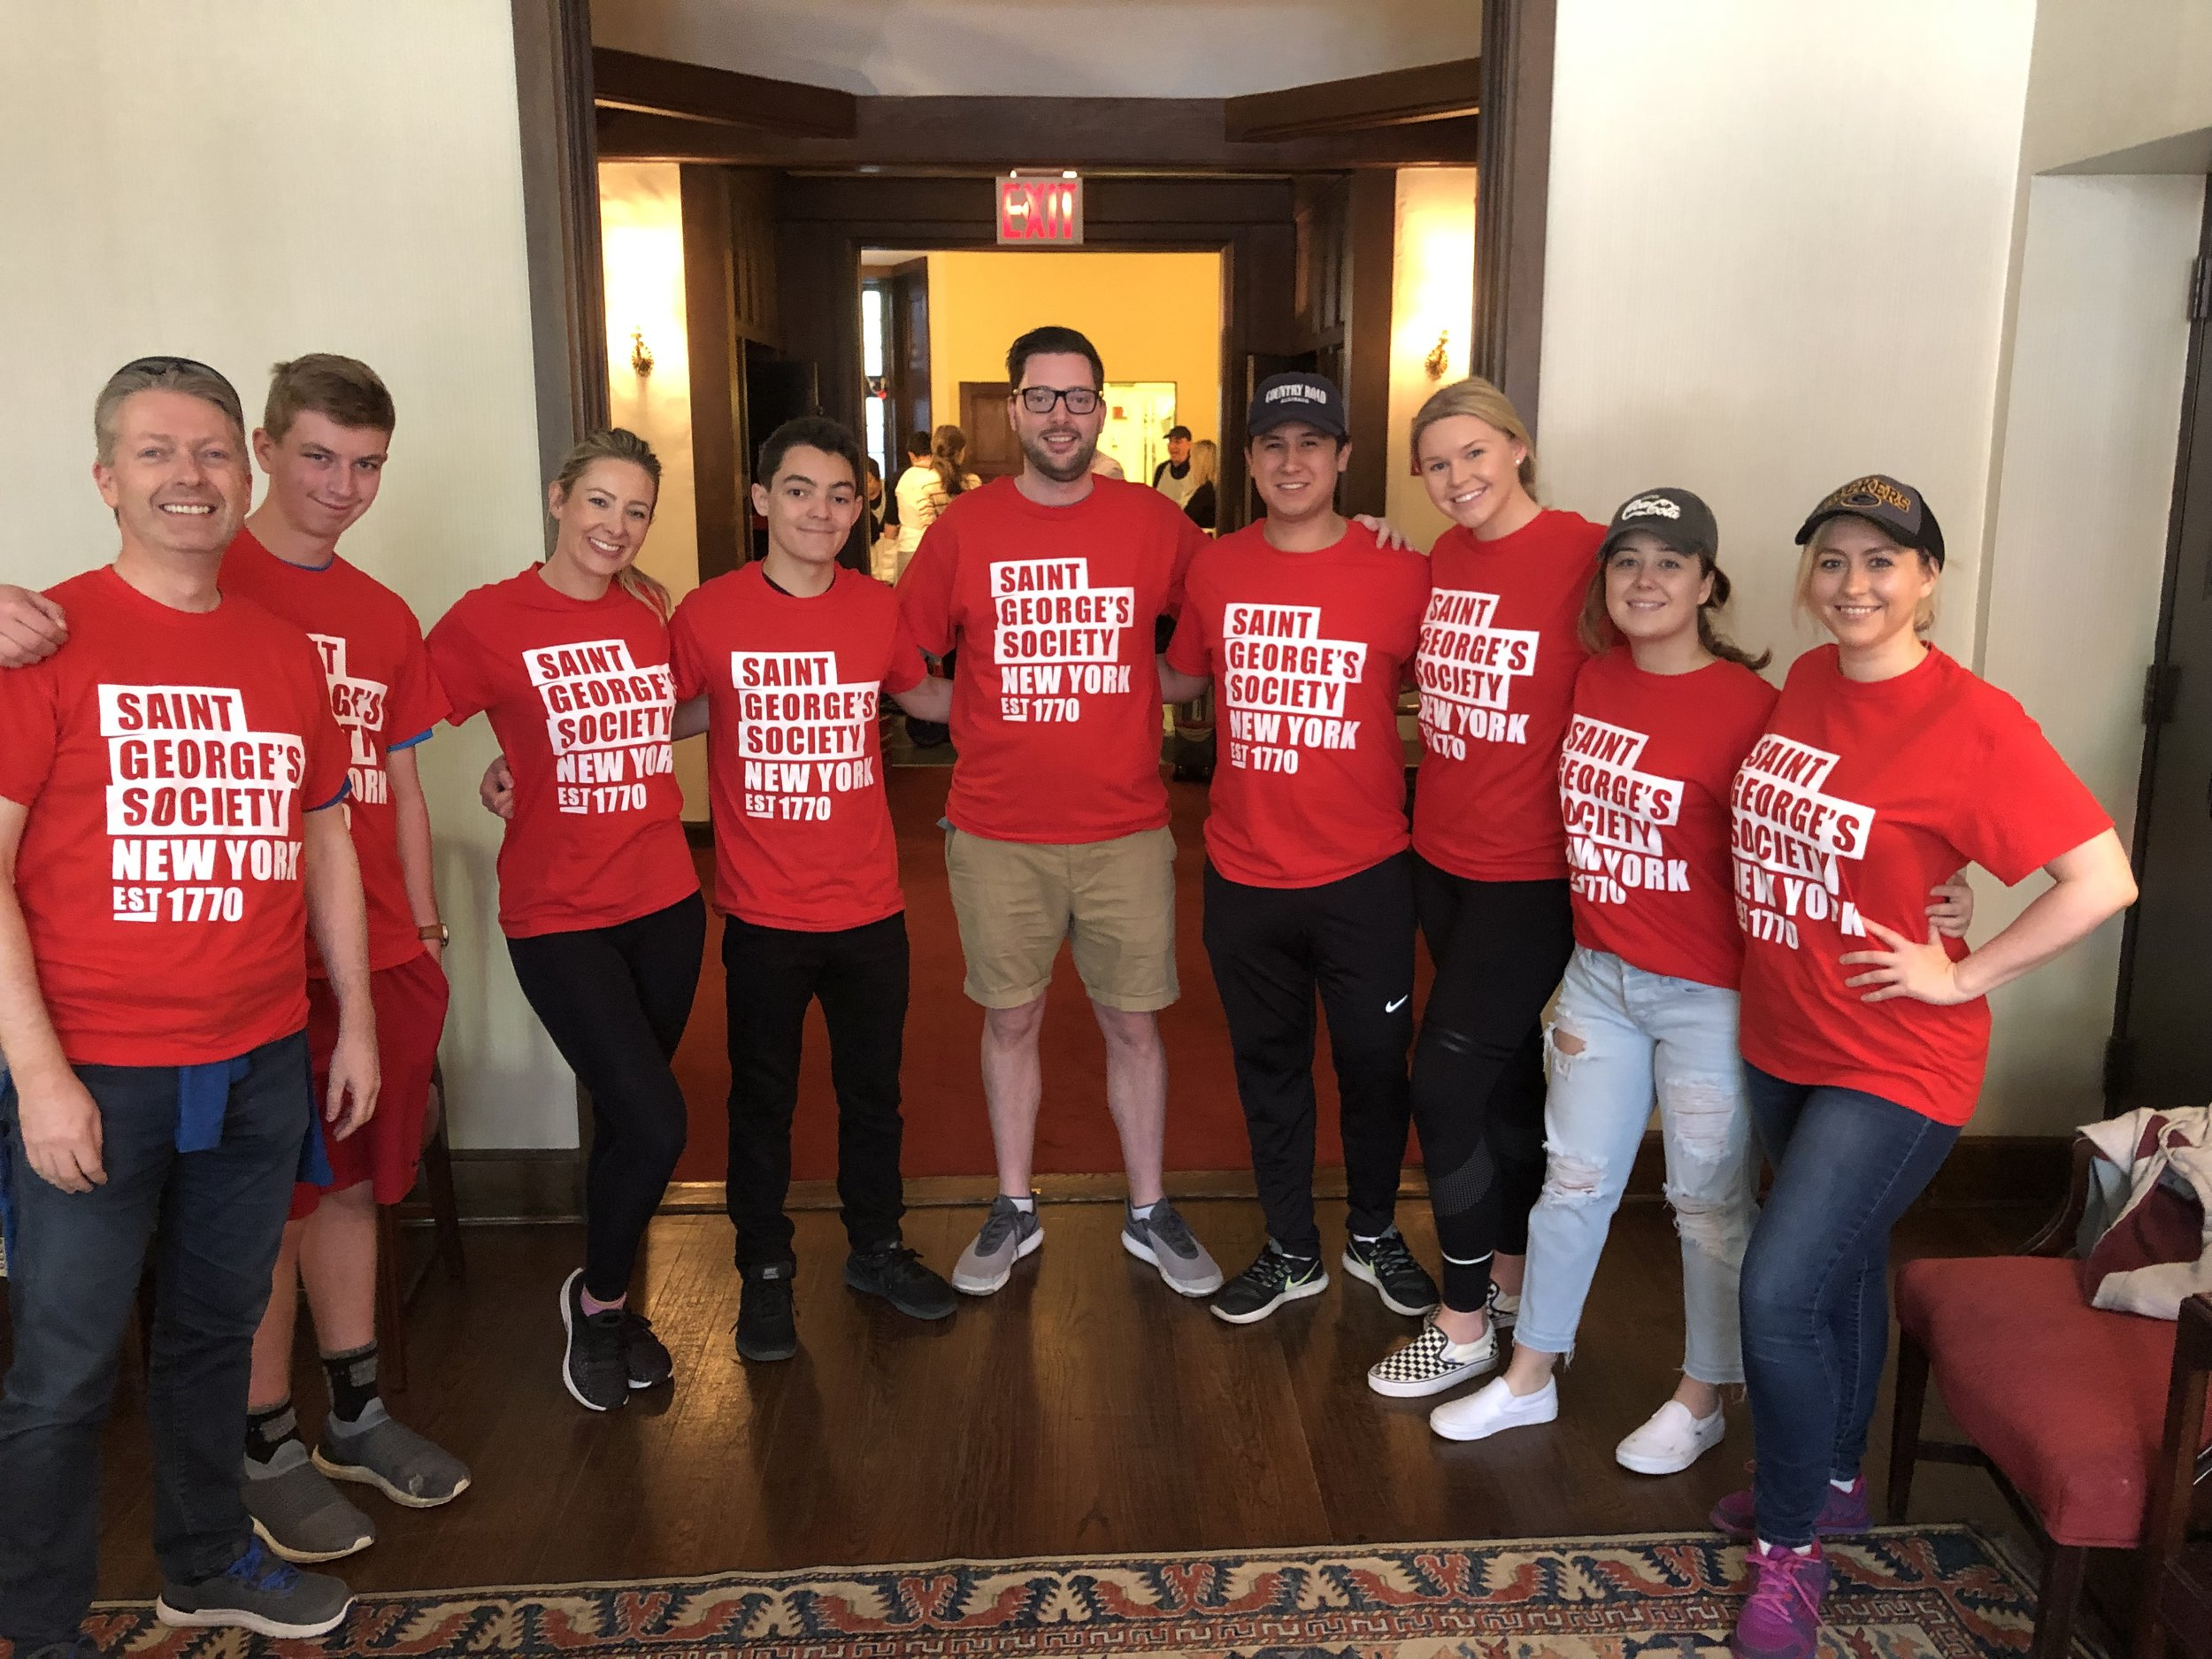 ST. GEORGE'S GIVES BACK - MAY 2019